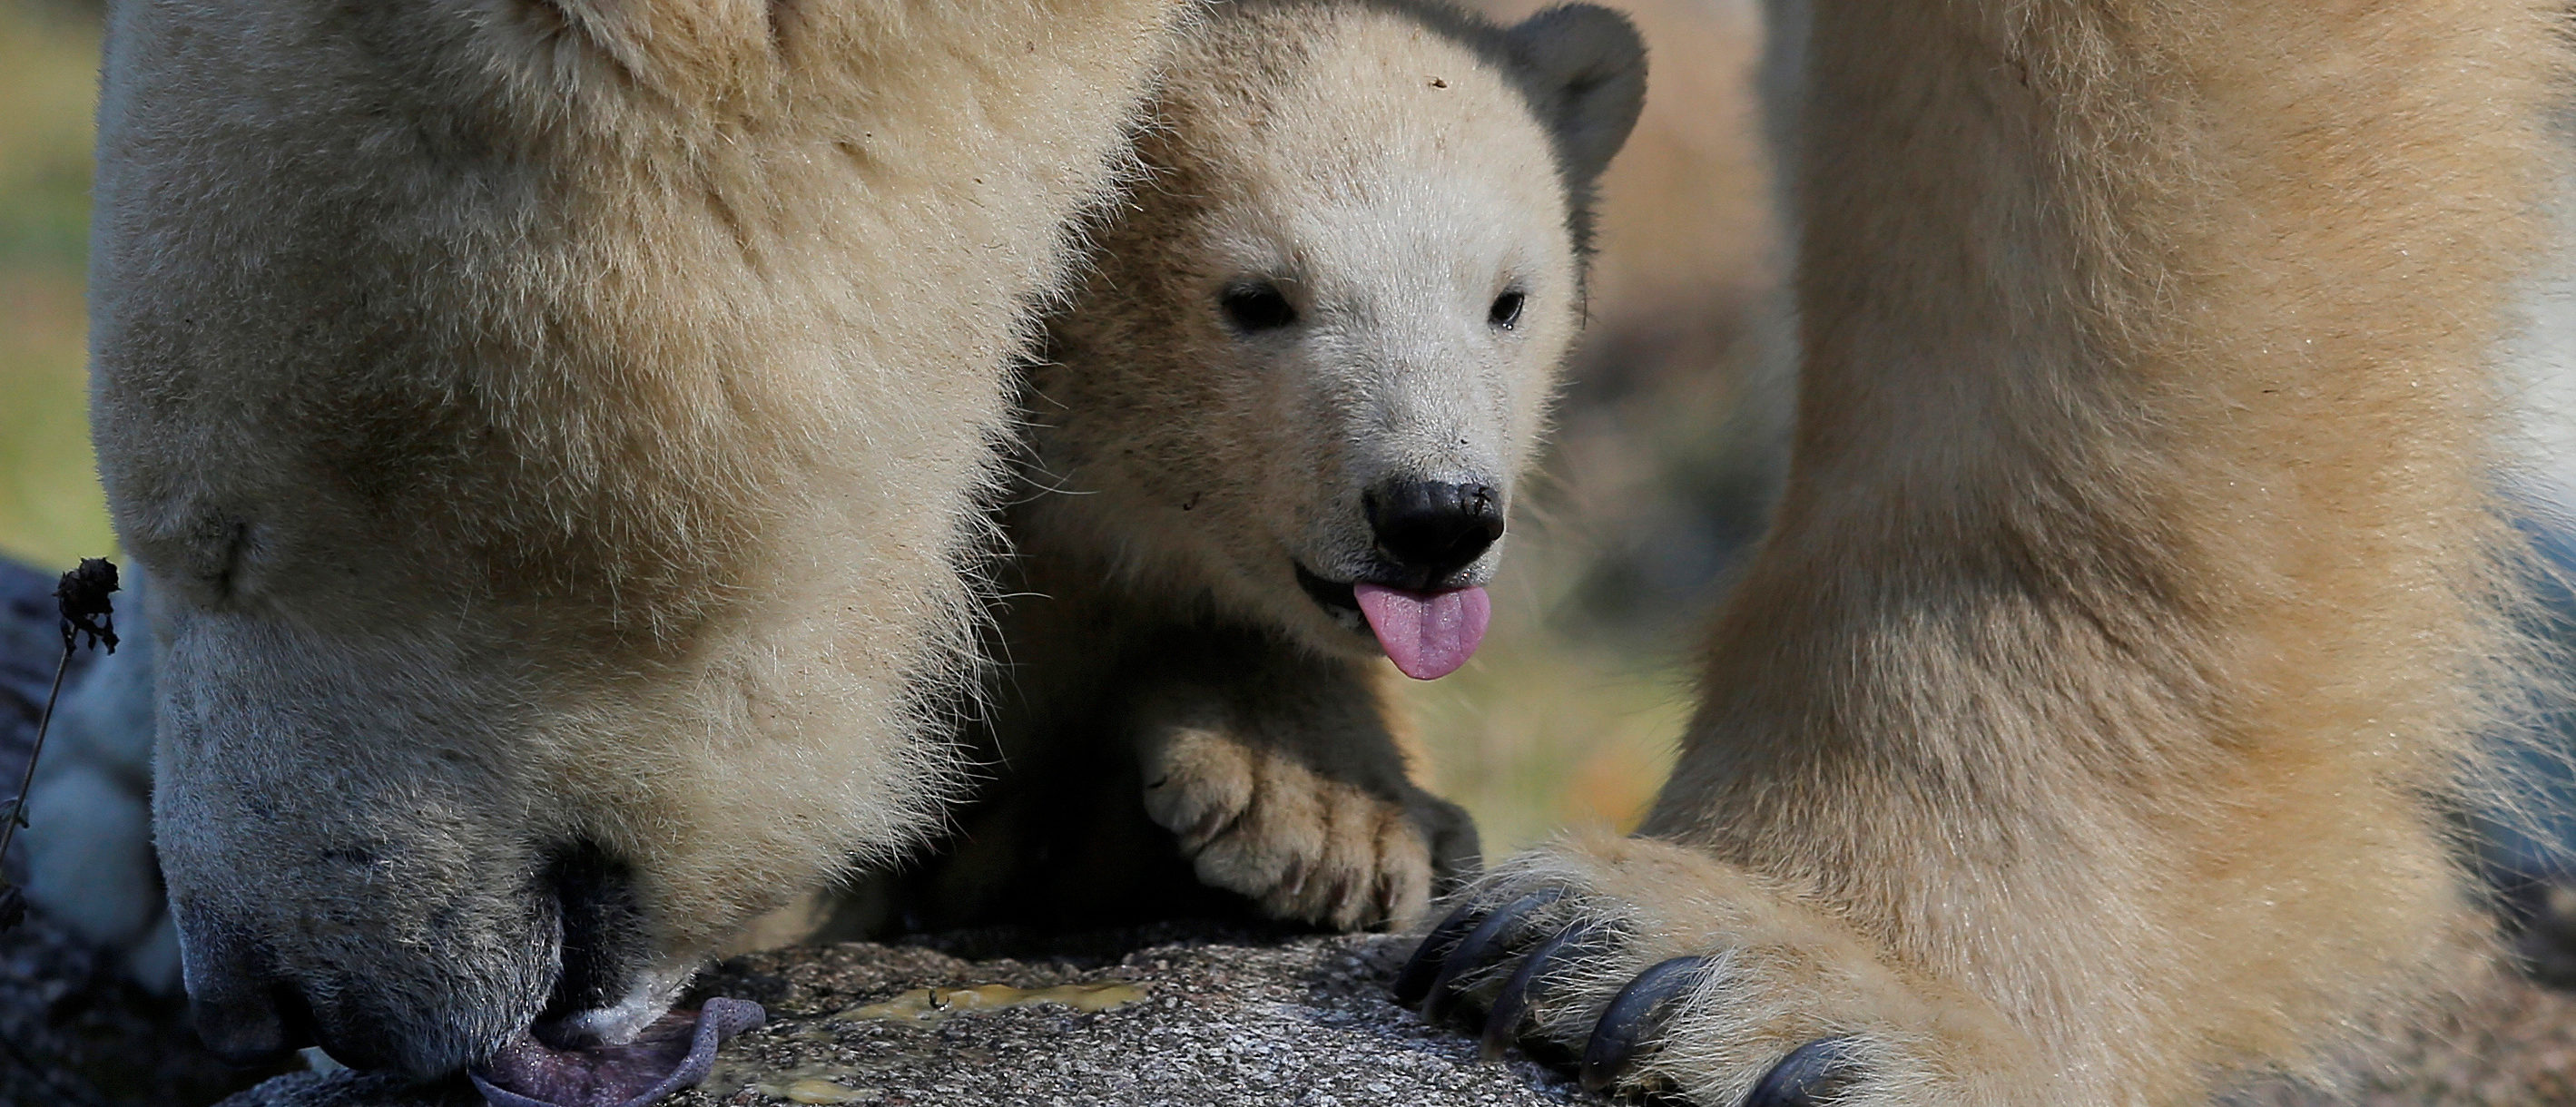 Female Polar bear cub Nanuq (polar bear in the Inuit language), born on November 7, 2016, is pictured with its mother Sesi during her first presentation to the public to mark international polar bear day at the zoo of Mulhouse, France, February 27, 2017. REUTERS/Vincent Kessler -